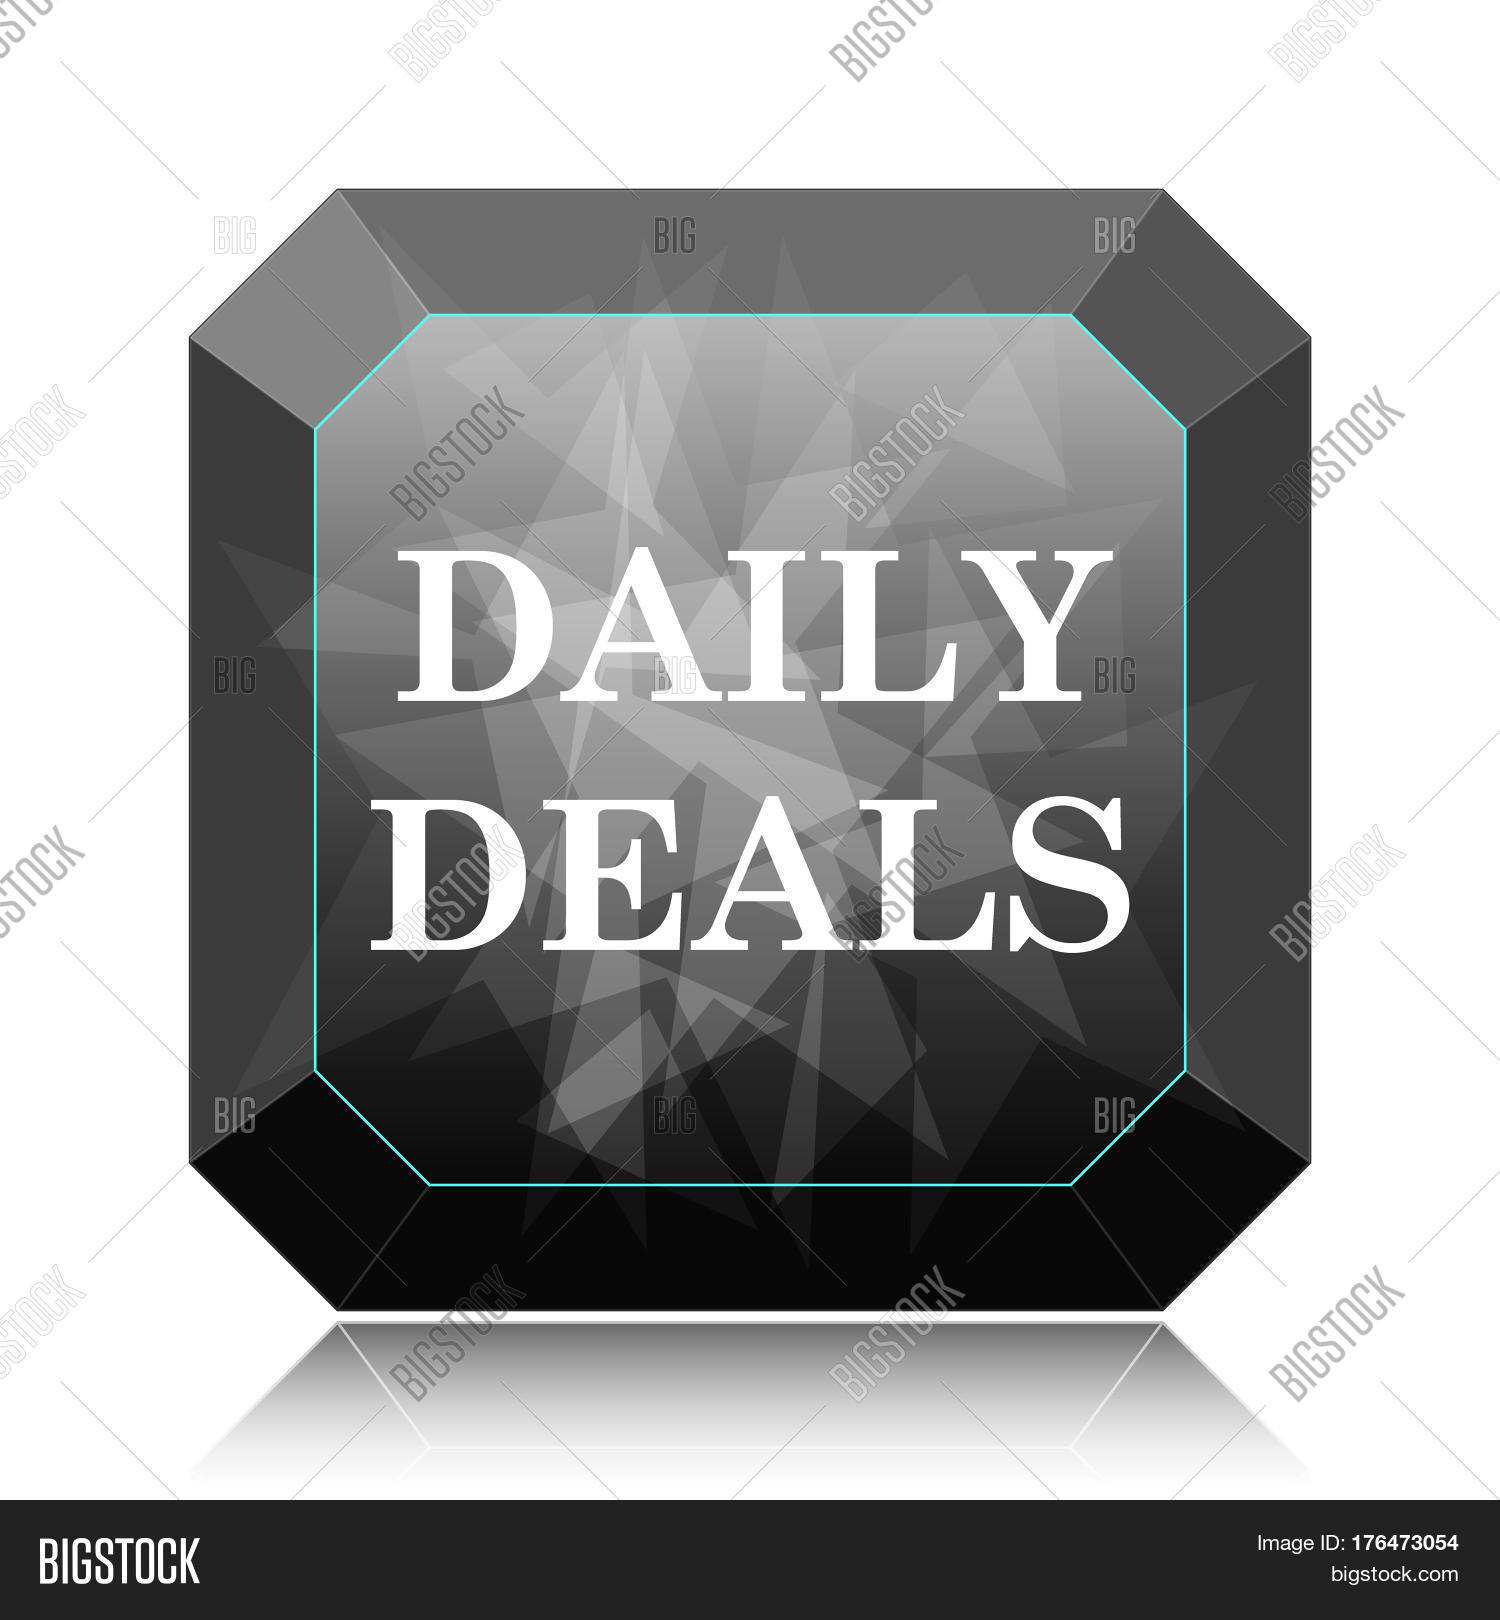 Big daily deals chester